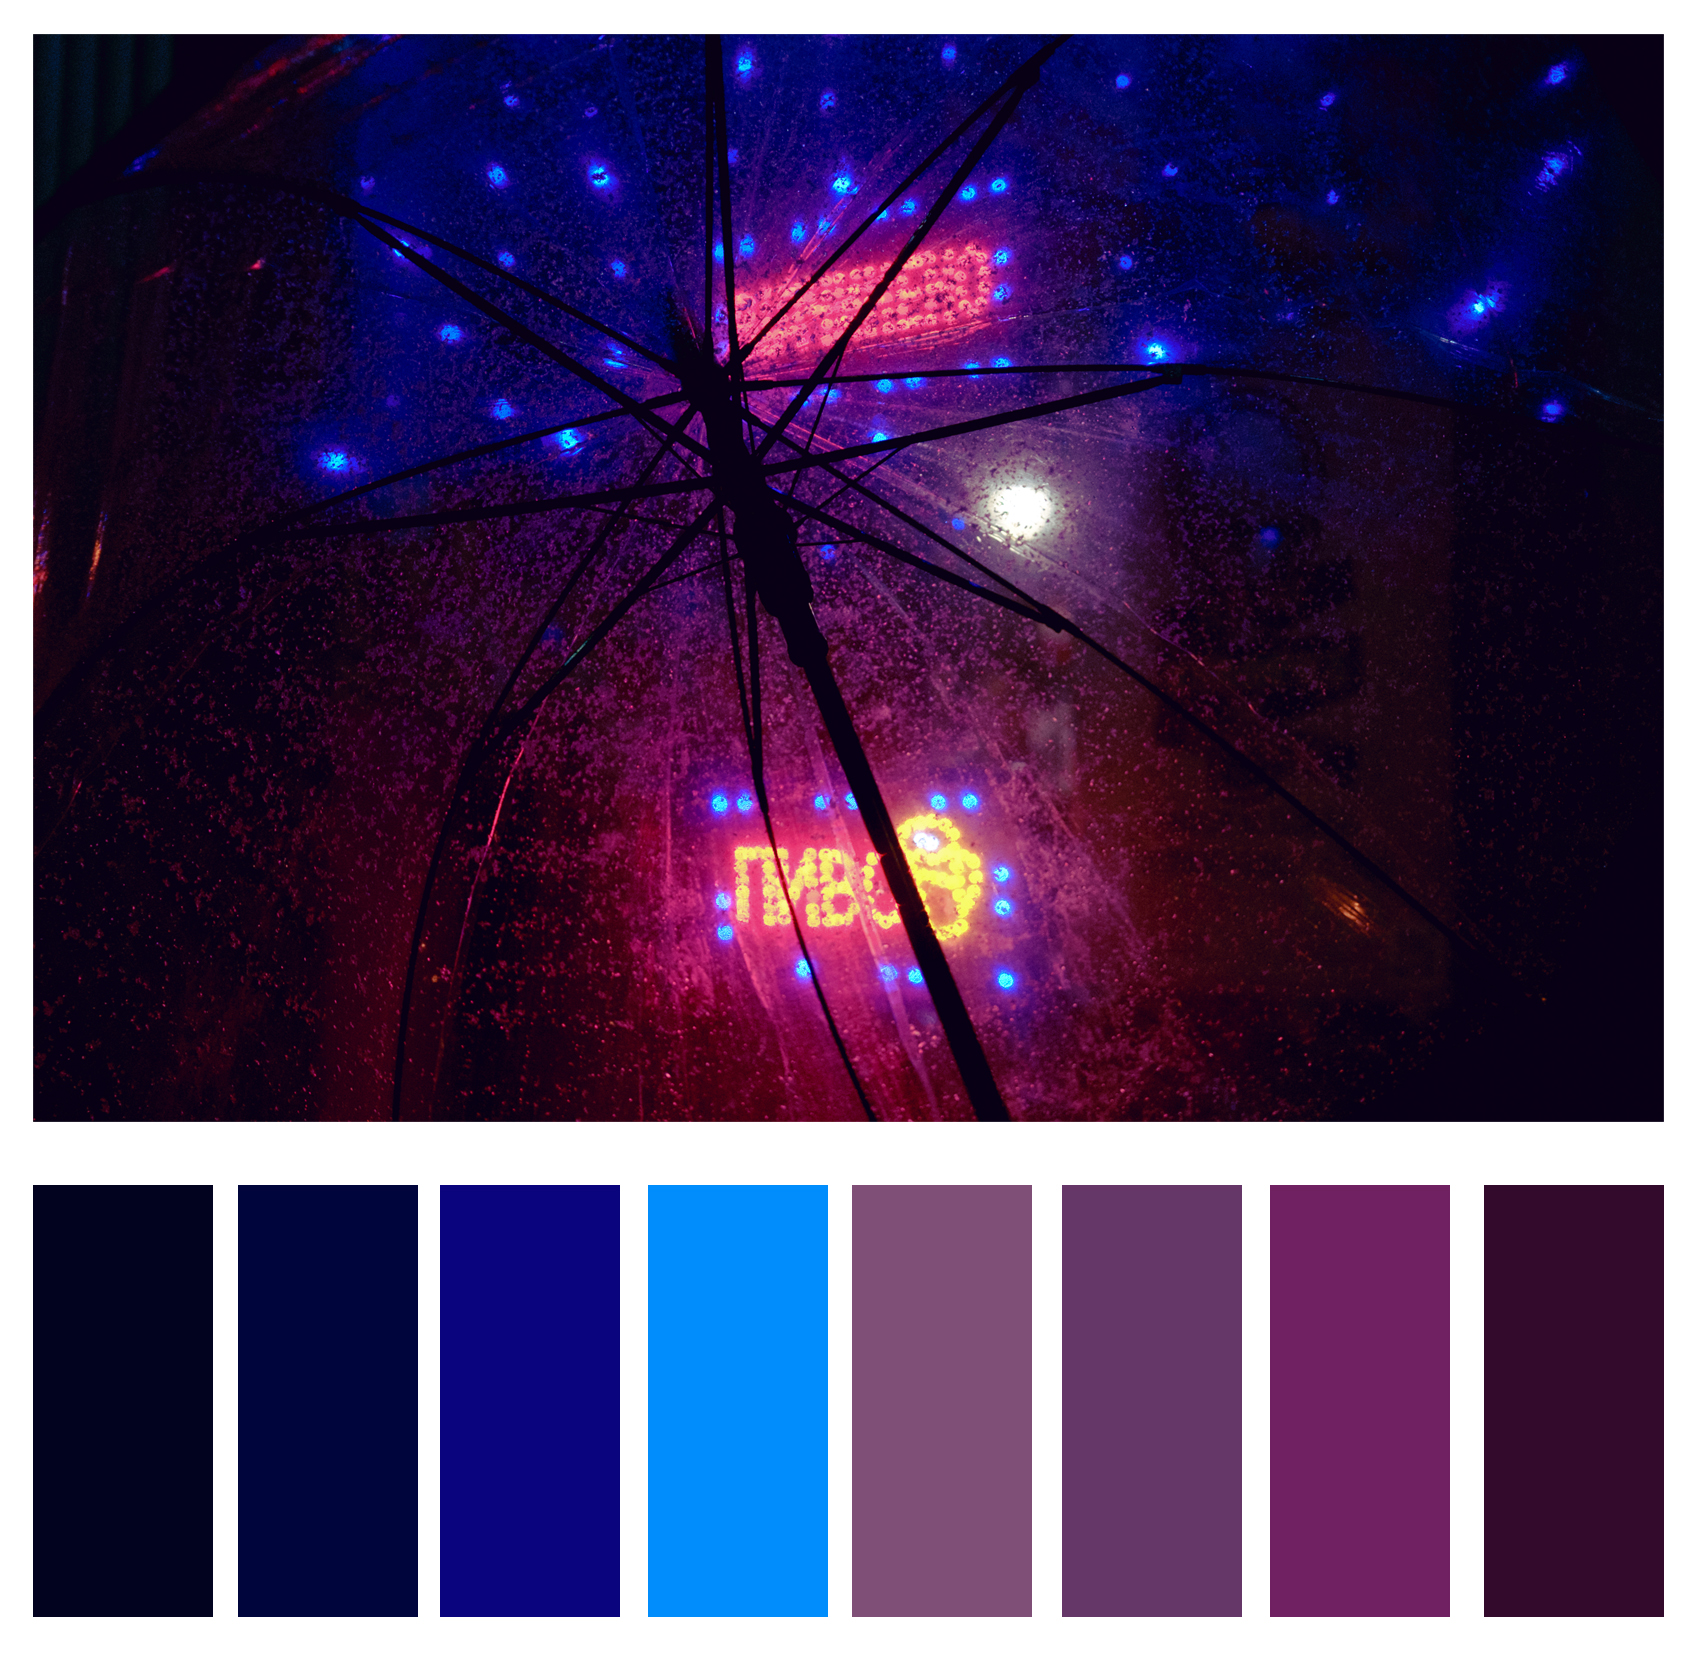 Figure 4c: Analogous shades of blues and purples.